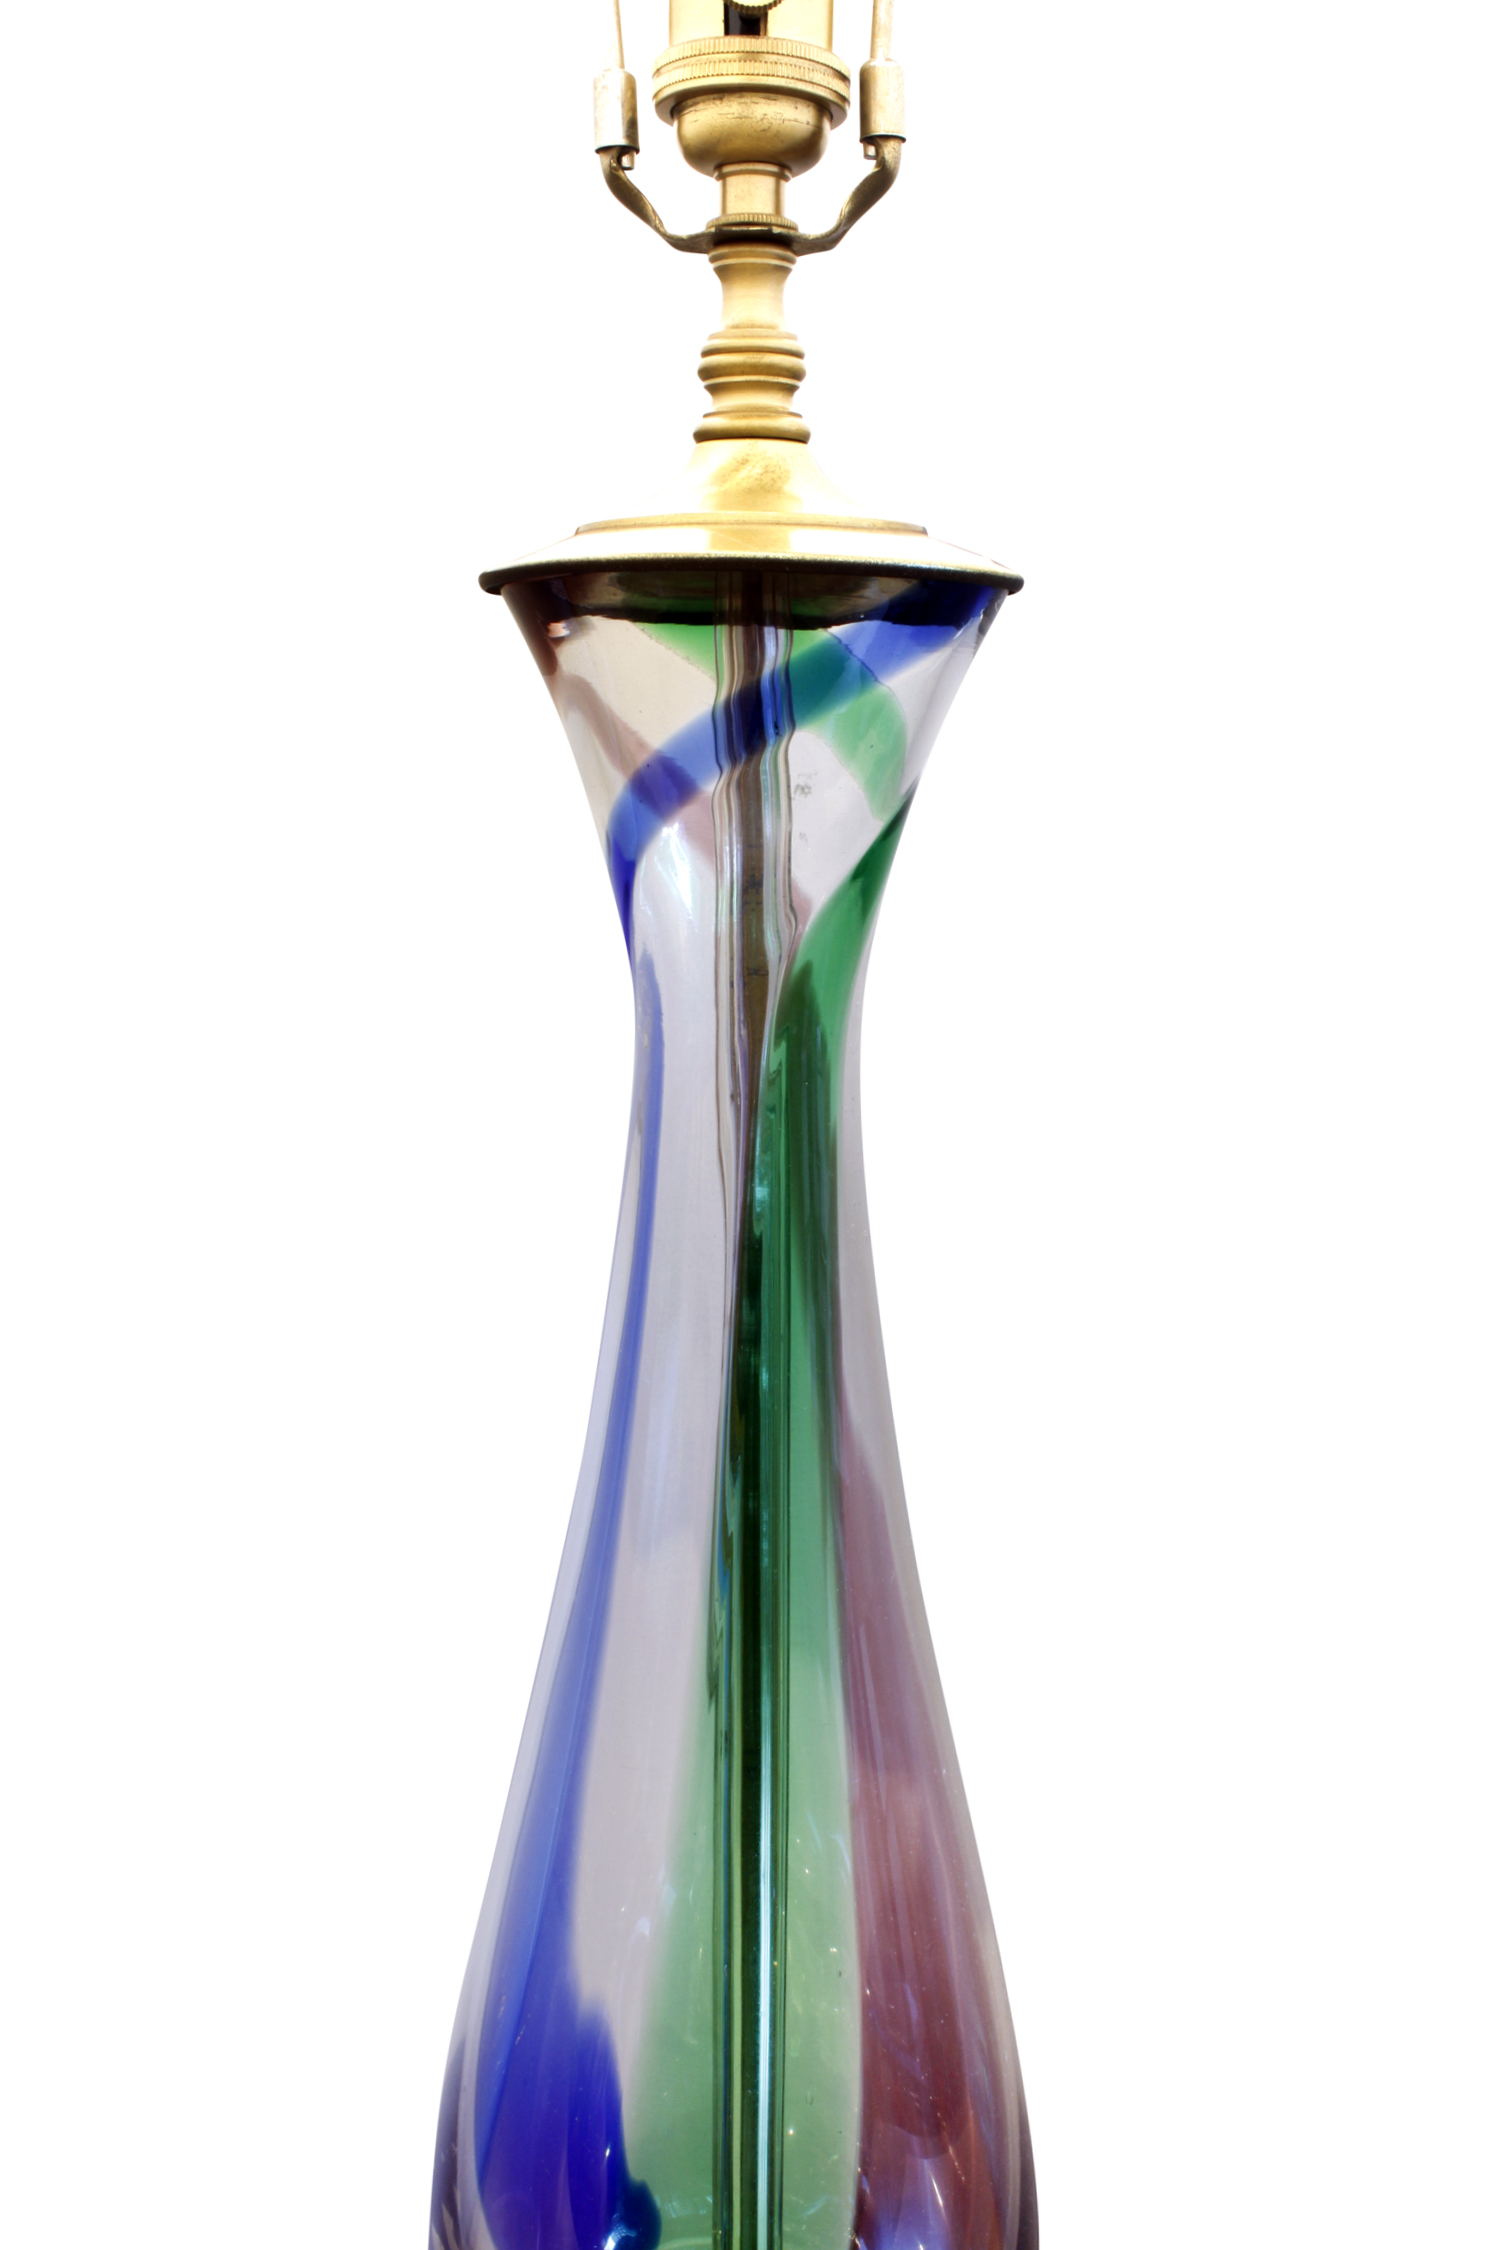 Murano pr red blue green clear table lamps pair dtl.JPG